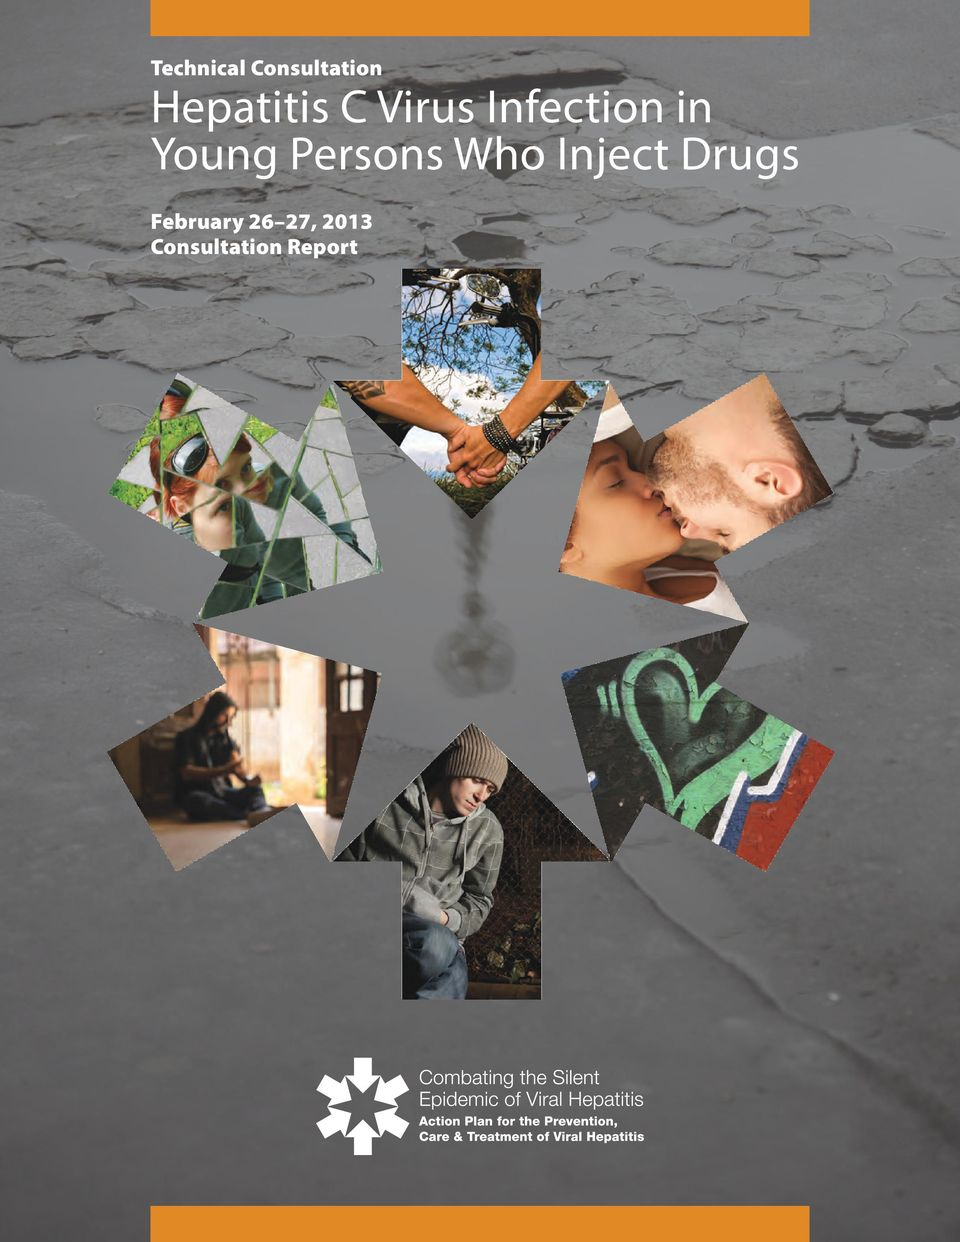 Young Persons Who Inject Drugs